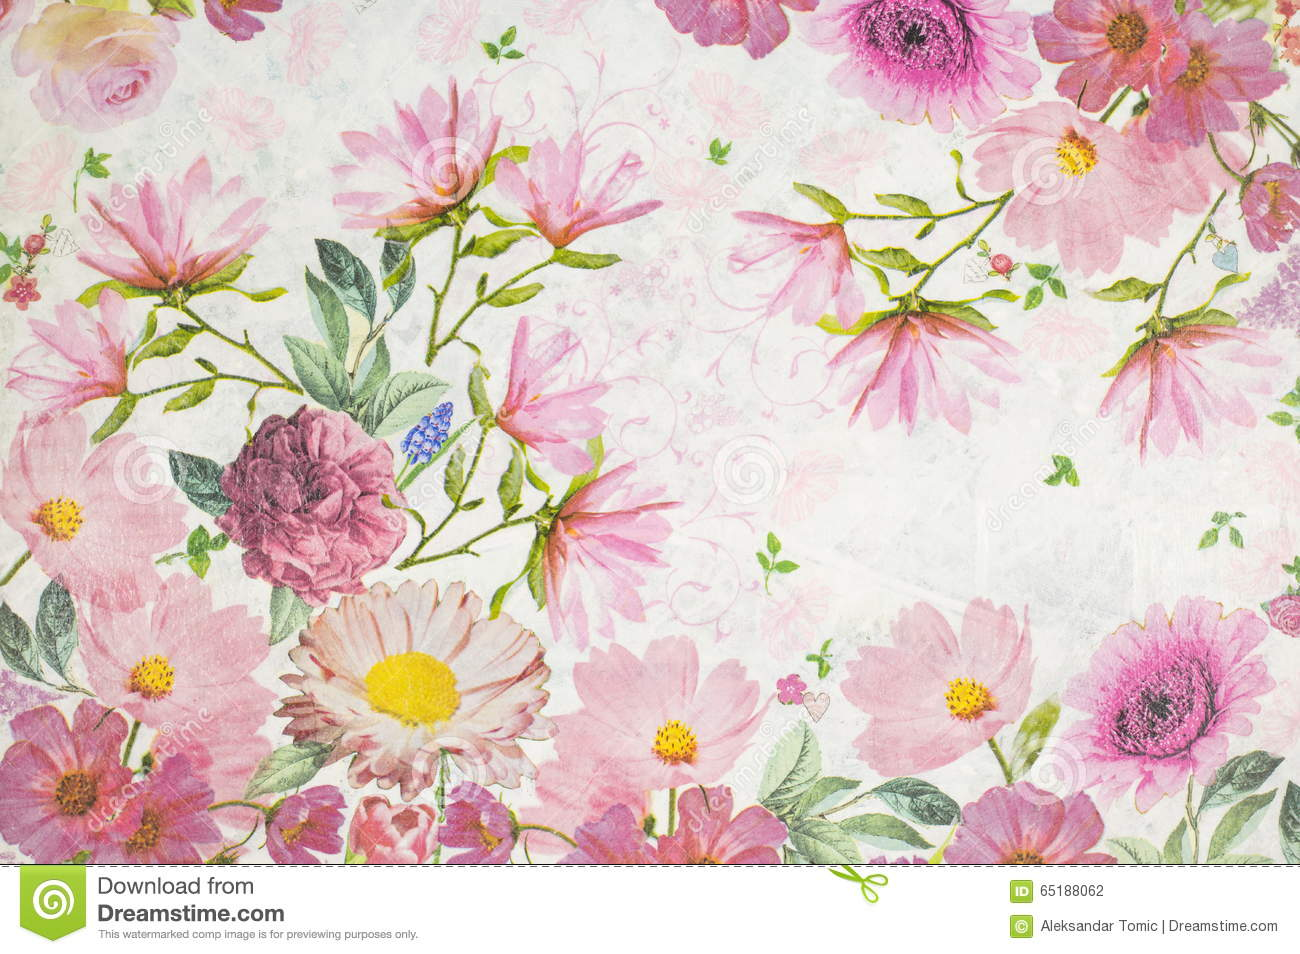 Photo of a decoupage decorated flower pattern